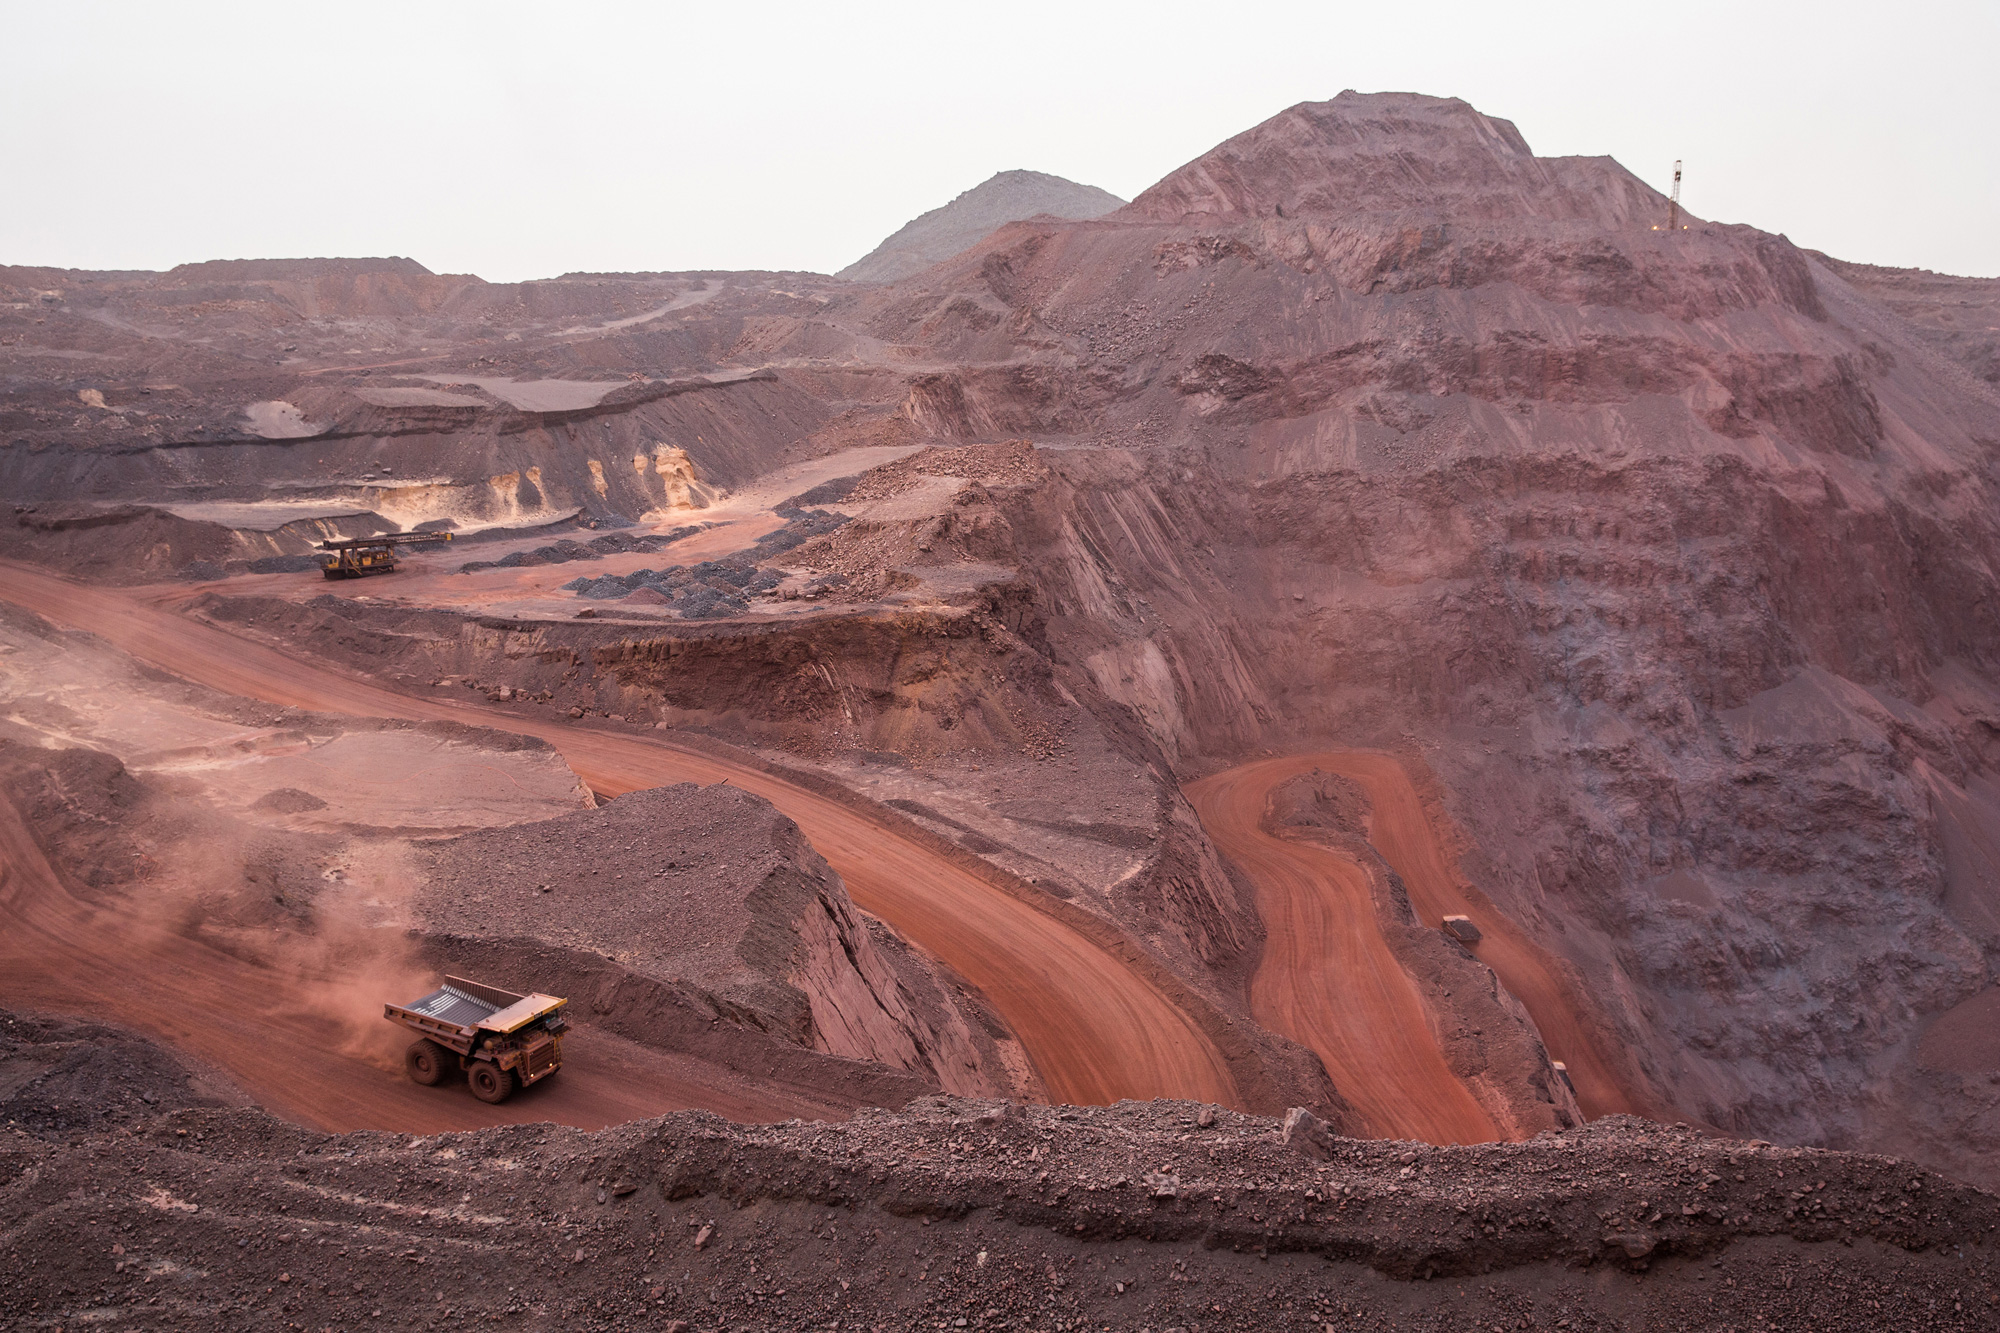 Trucks transporting iron ore are seen at one of the Zouérat open-cast mines. After it is extracted, the iron ore is loaded and transported on the freight trains that travel about 435 miles to the coast, and can be as long as 1.5 miles, according to Societe Nationale Industrielle et Miniere (SNIM), the Mauritanian government mining company. (George Popescu/GroundTruth)